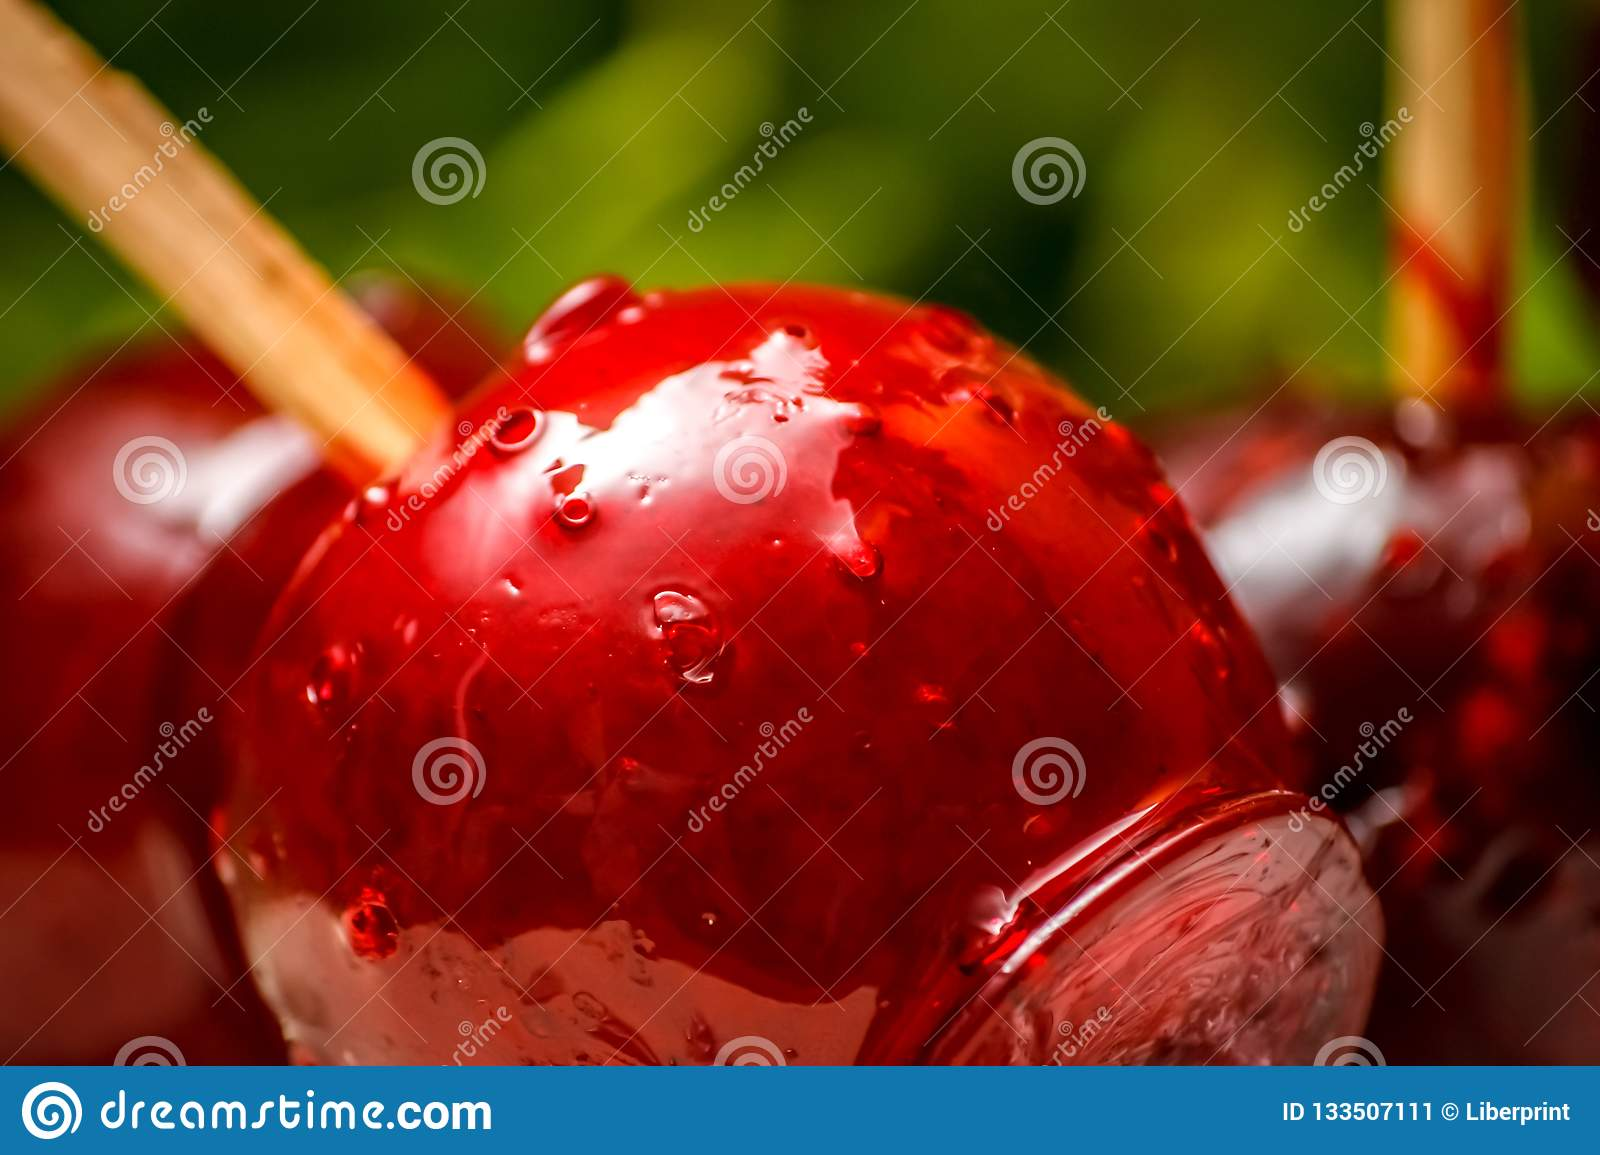 Red candy or toffee apple with green liana vine in the background.